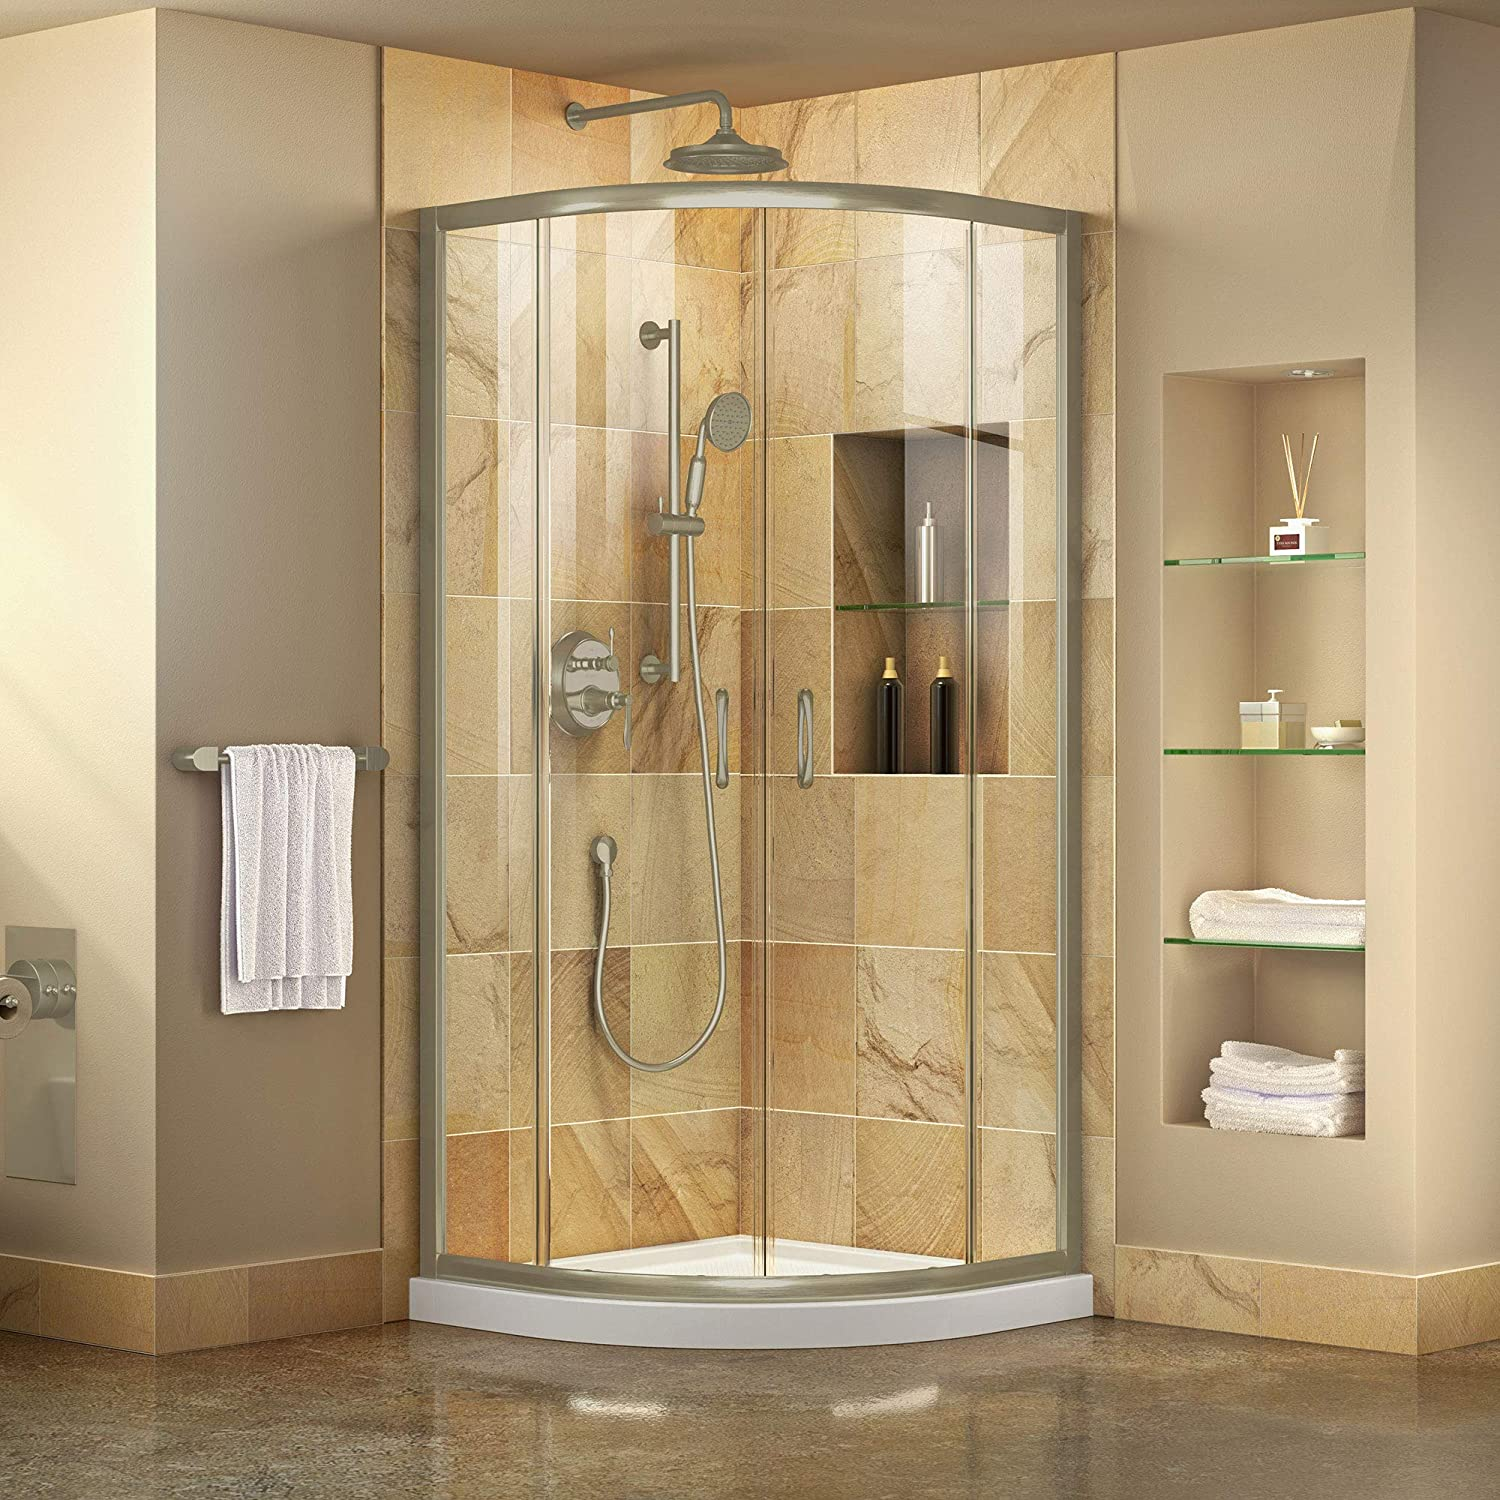 Dreamline DL-6703-04CL Prime Shower Enclosure and Base, 38 W x 38 D, Brushed Nickel